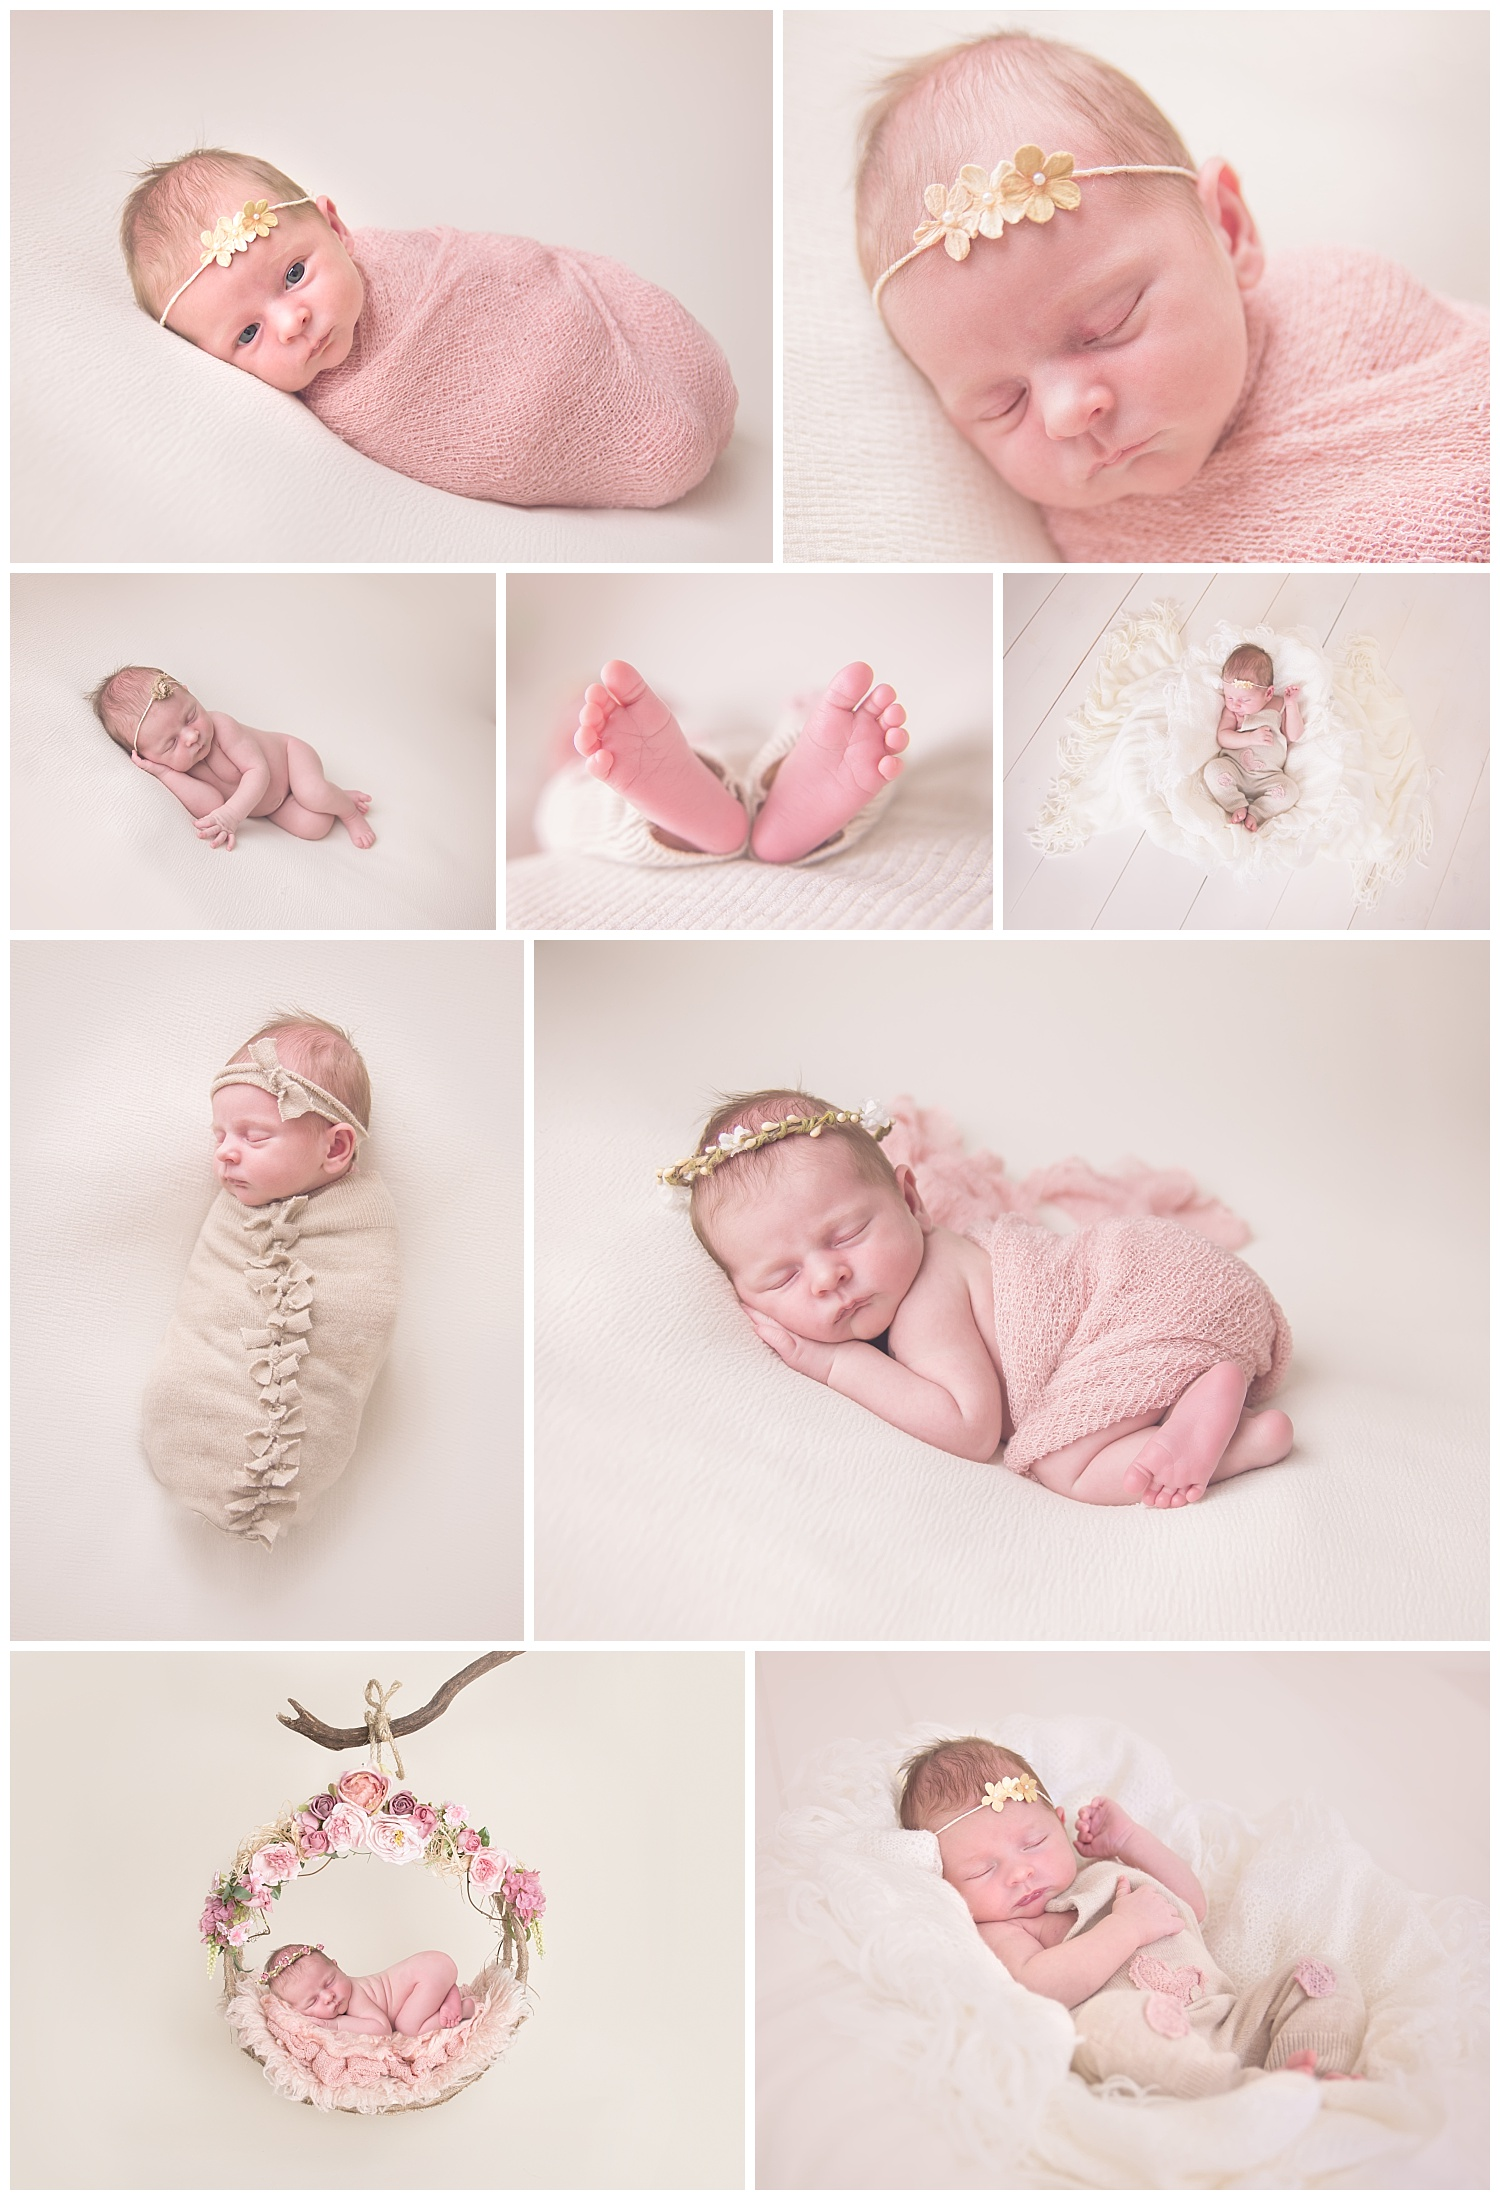 Newborn Baby girl wrapped in pink cloth in Sequim Newborn Photography Studio